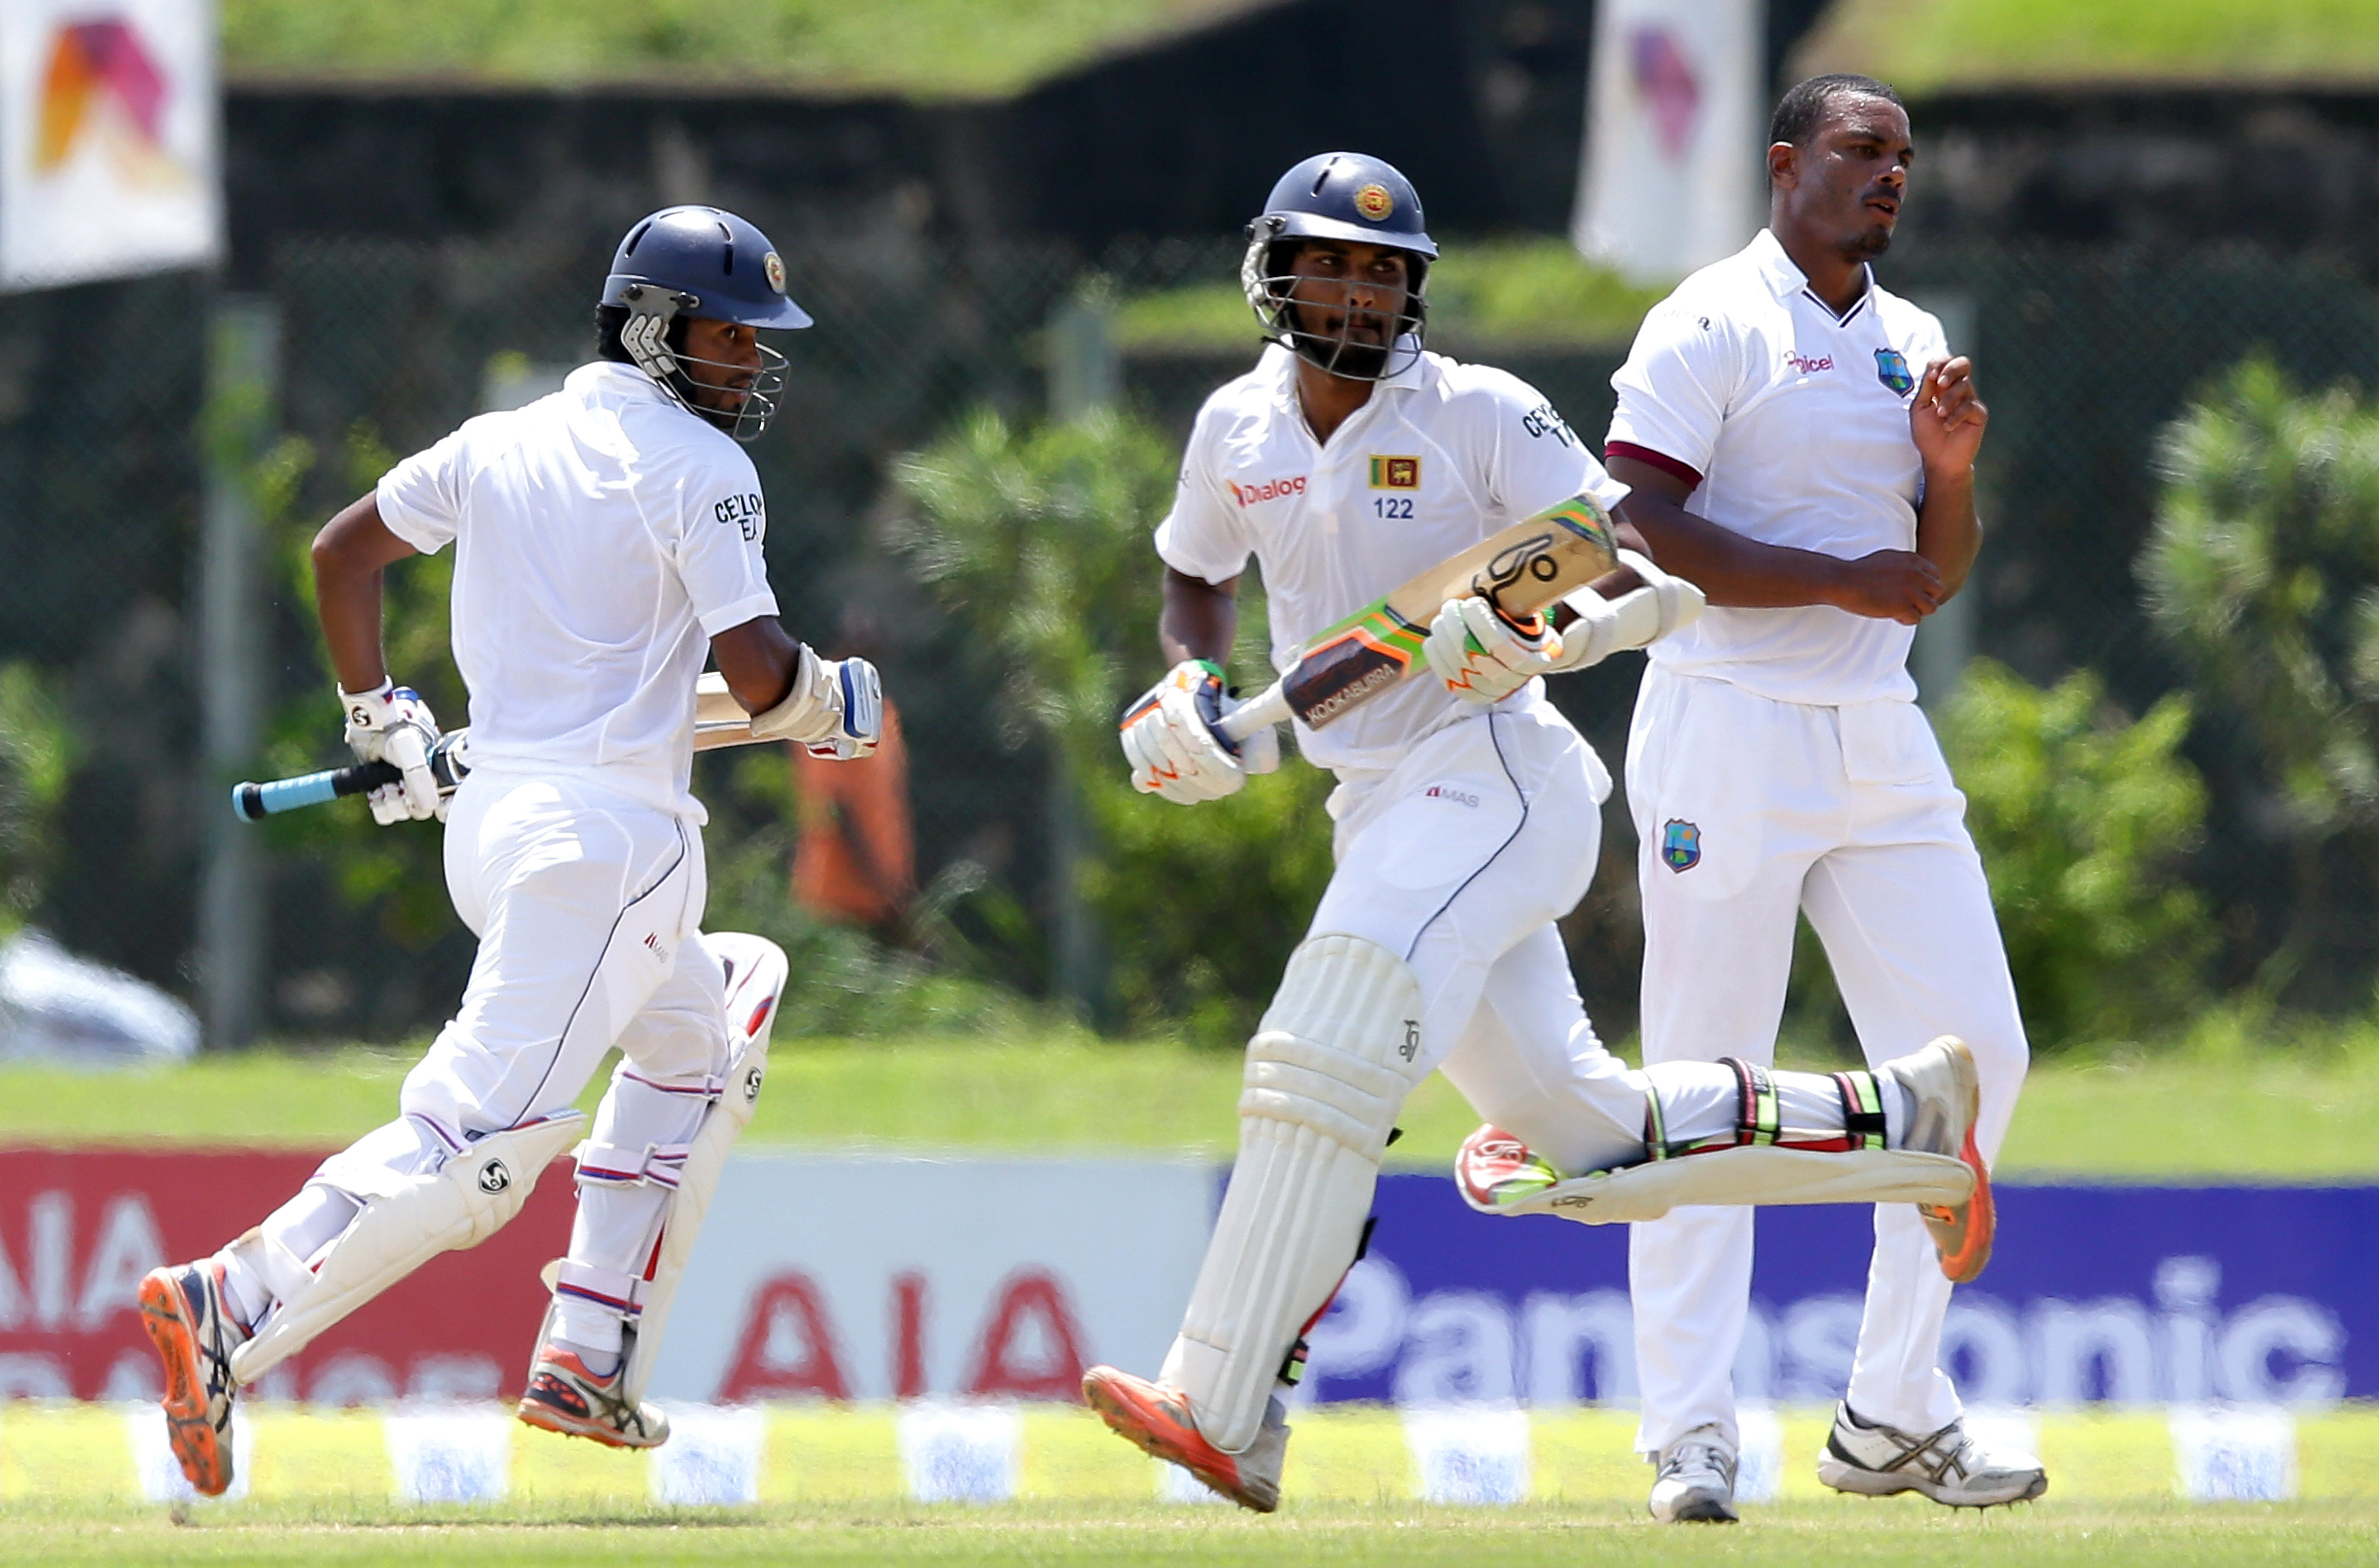 Sri Lankan cricketers Dimuth Karunarathne, left, and Dinesh Chandimal run between the wickets as West Indies' bowler Shannon Gabriel watches during the second day of the first test cricket match against West Indies in Galle, Sri Lanka, Thursday, Oct. 15, 2015. ( AP Photo/ Pamod Nilru )